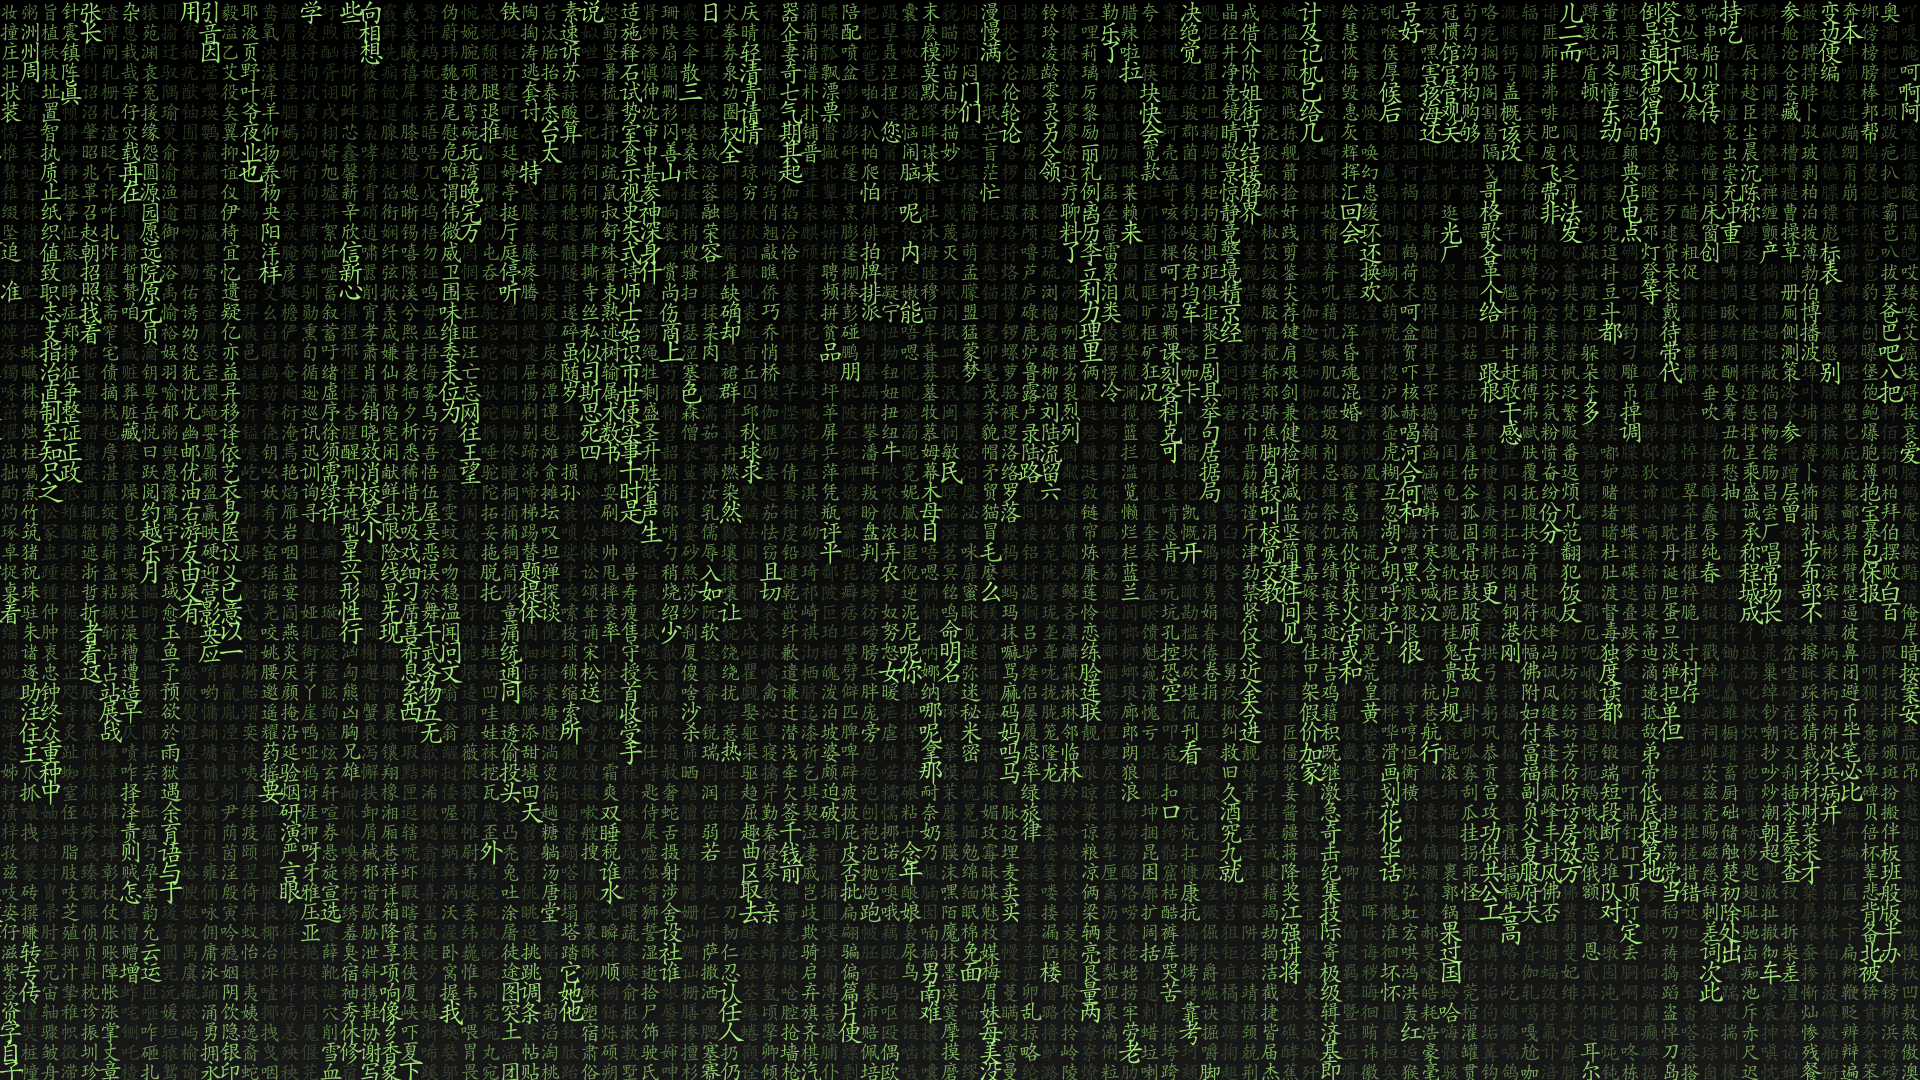 2048x1152 the matrix typography 2048x1152 resolution hd 4k the matrix typography 2048x1152 resolution voltagebd Choice Image